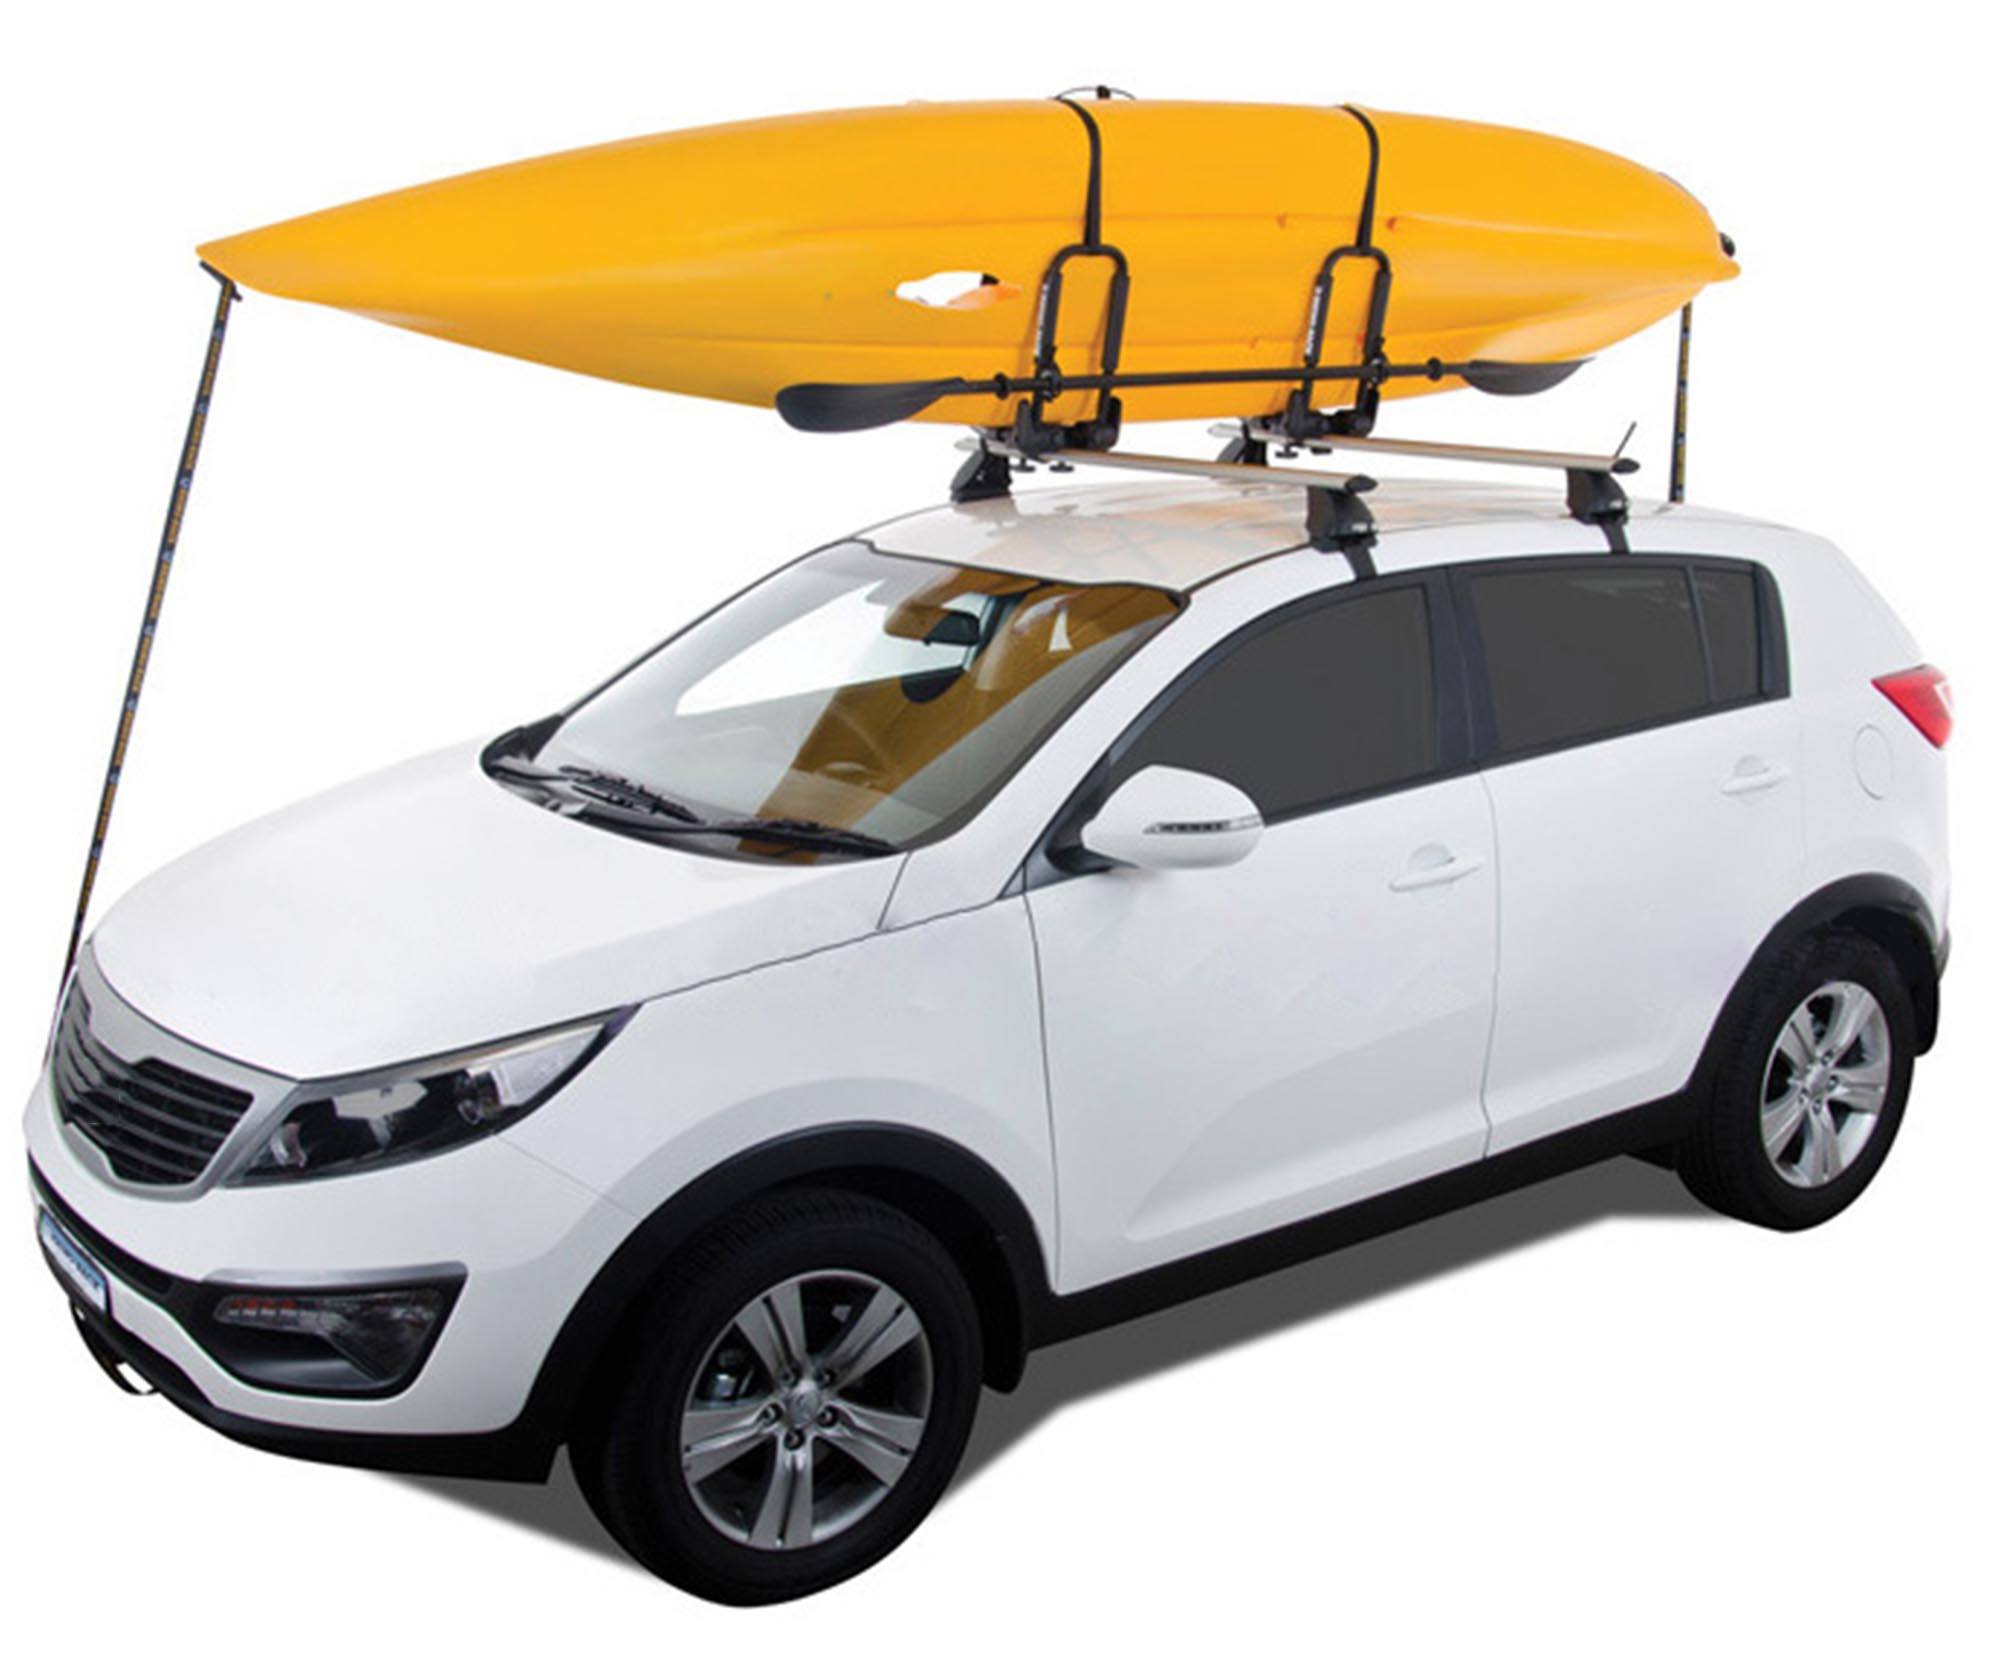 mounted finish car gray carrier single product rack foldable kayak copy sparehand roof vr vehicle